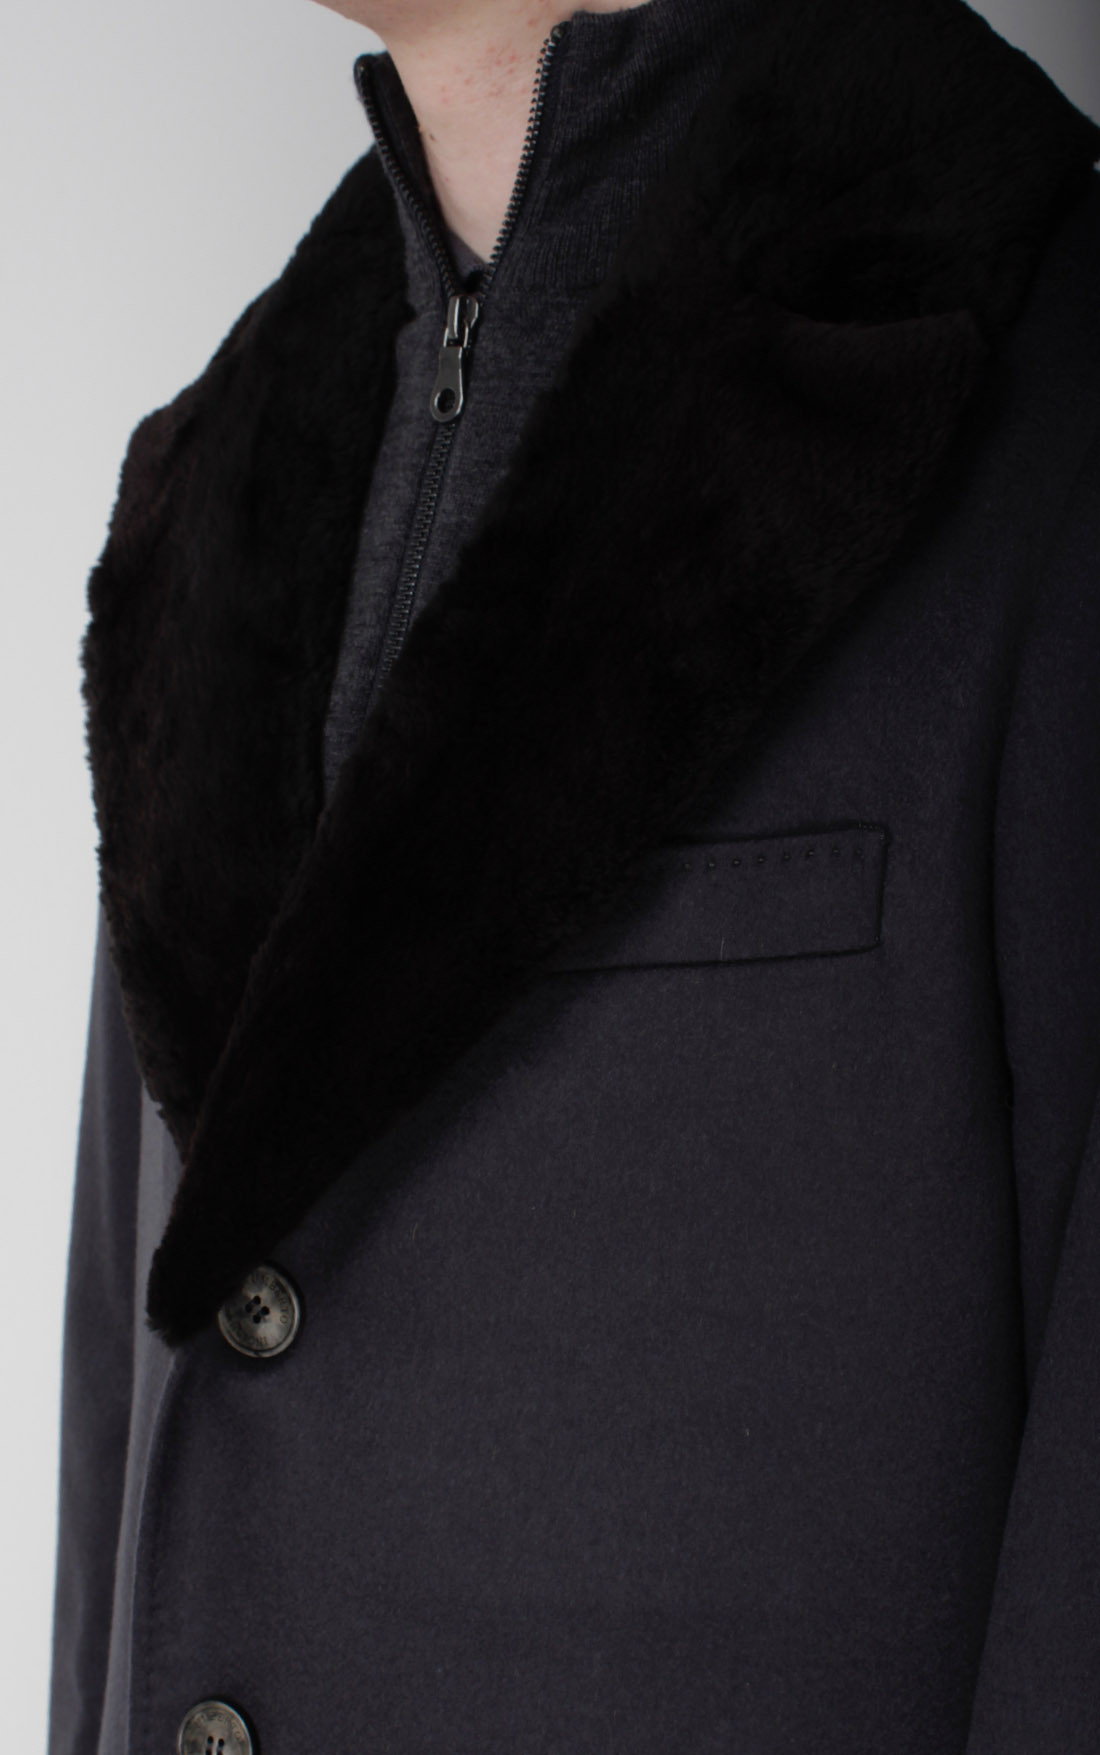 Umberto Bilancioni - Grey Cashmere Coat with Mink Collar (A6UGT019)